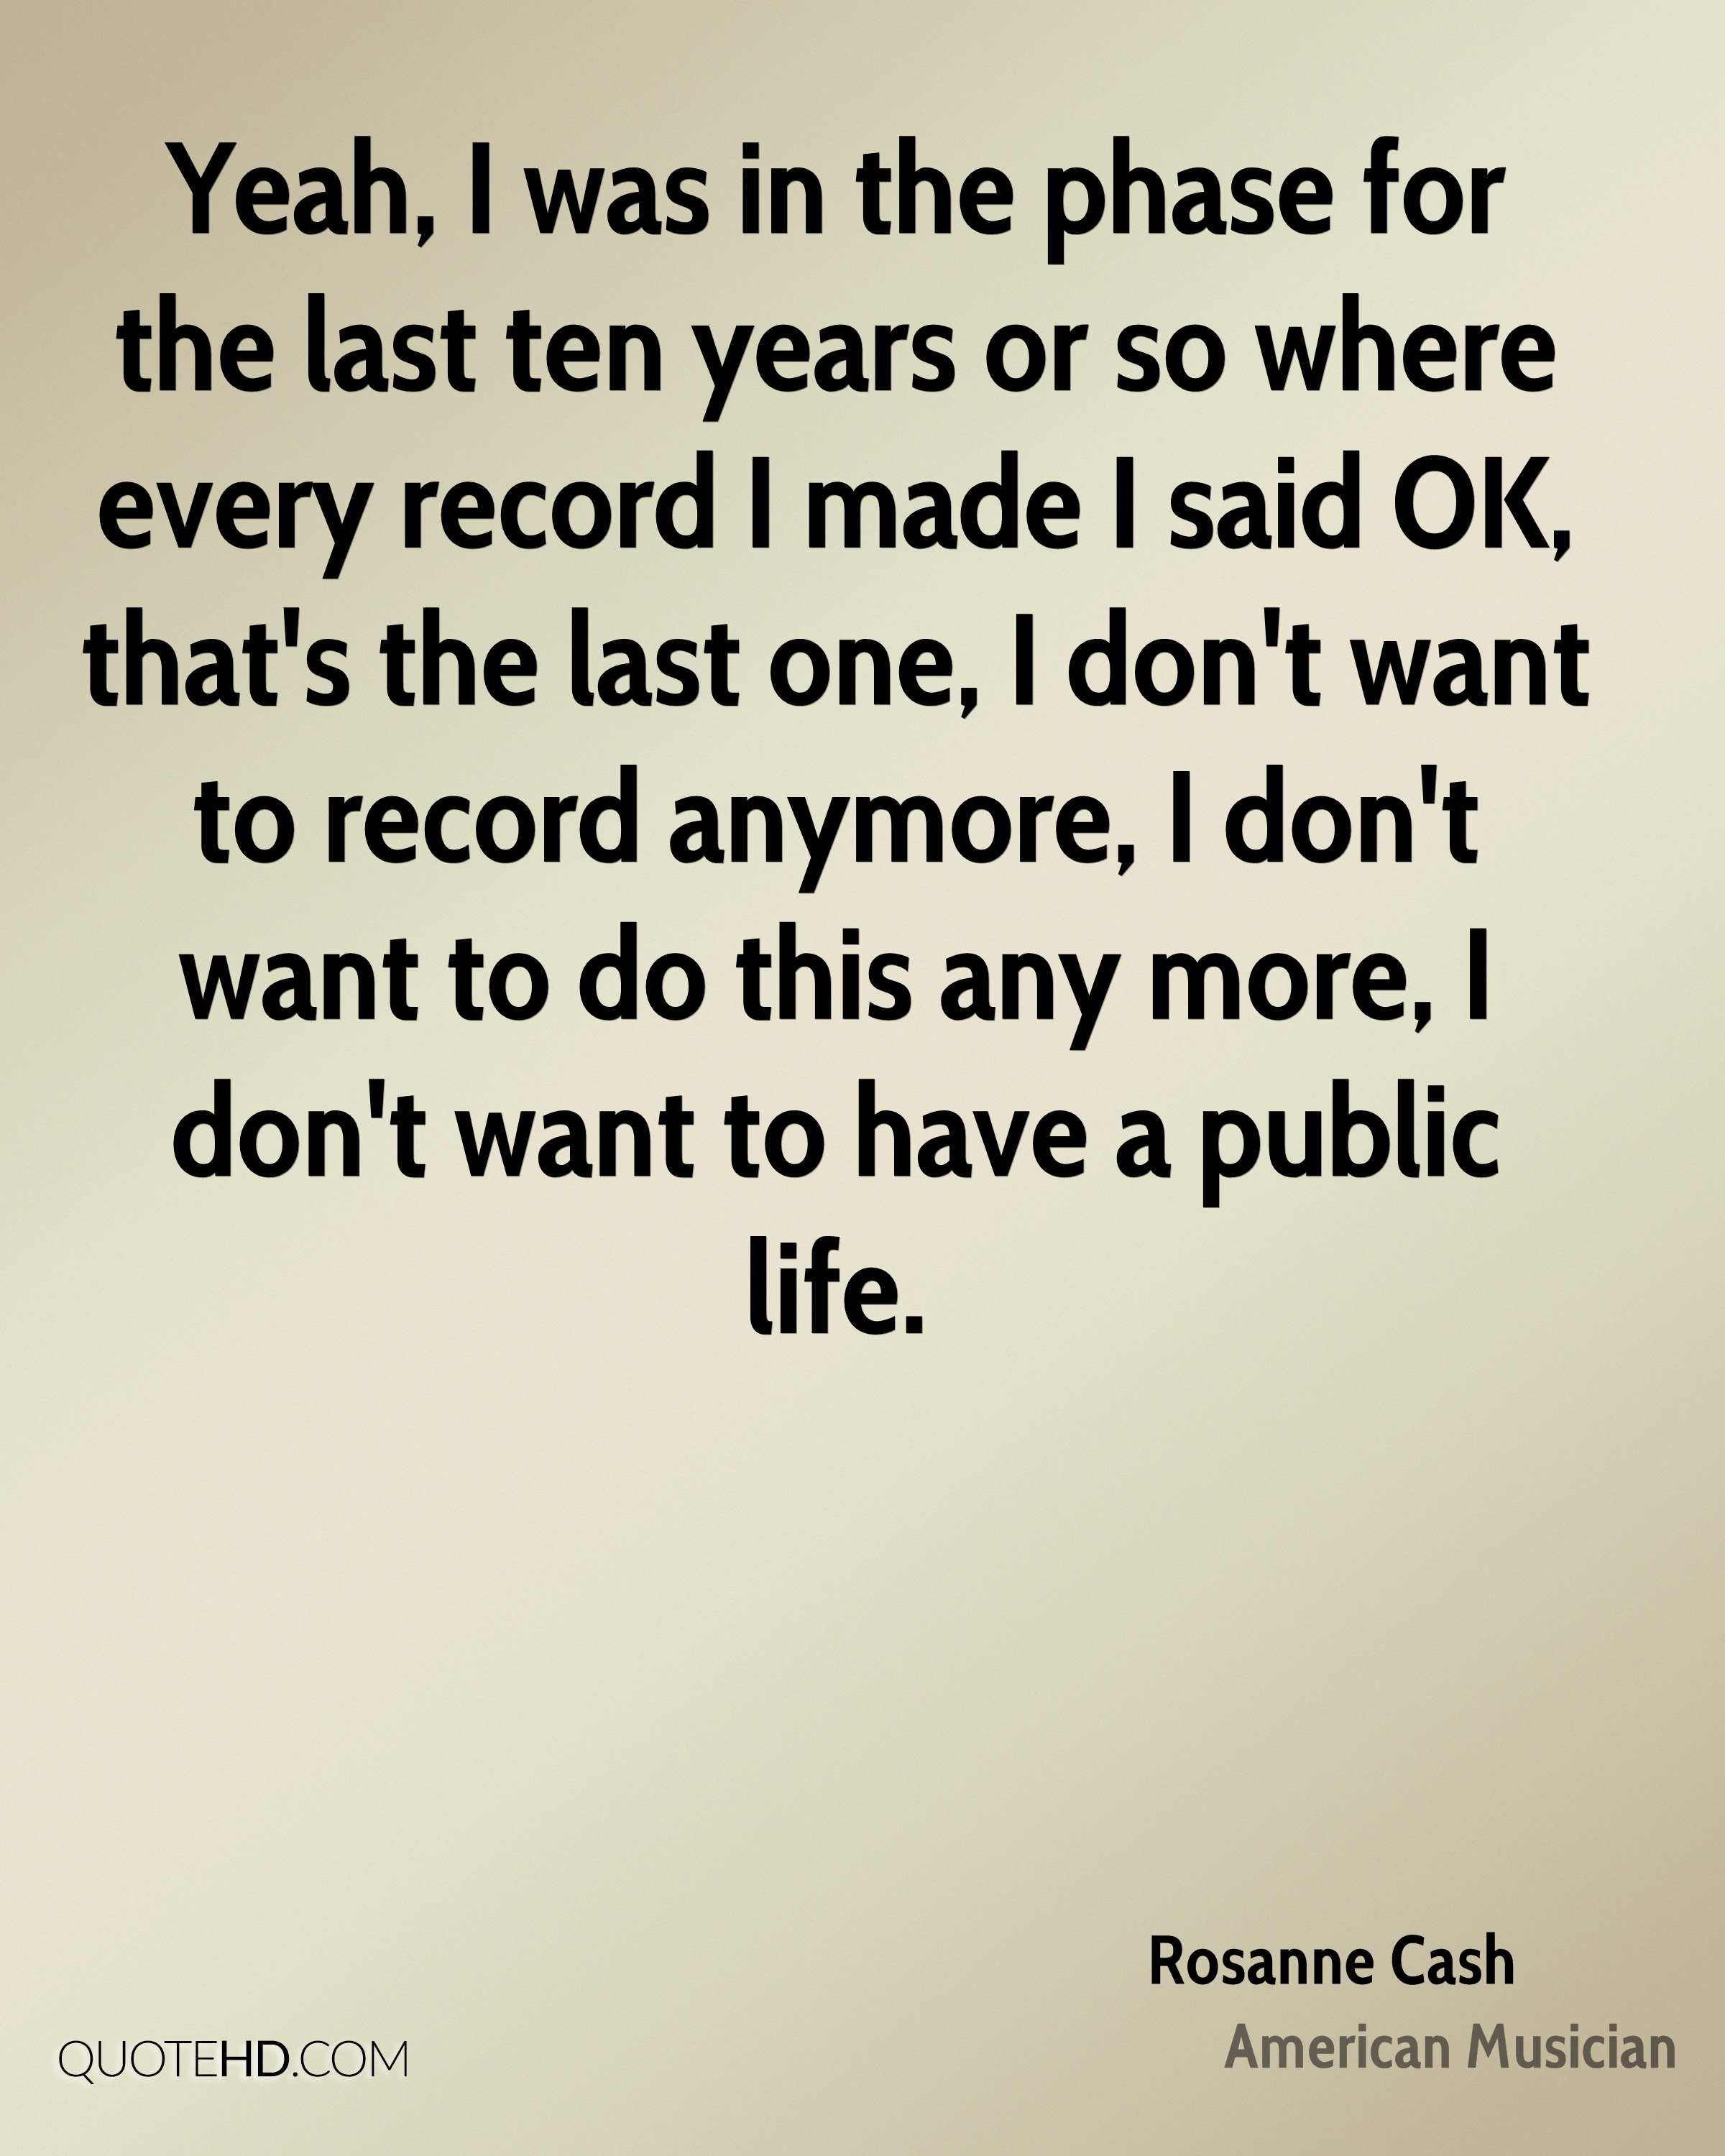 Yeah, I was in the phase for the last ten years or so where every record I made I said OK, that's the last one, I don't want to record anymore, I don't want to do this any more, I don't want to have a public life.